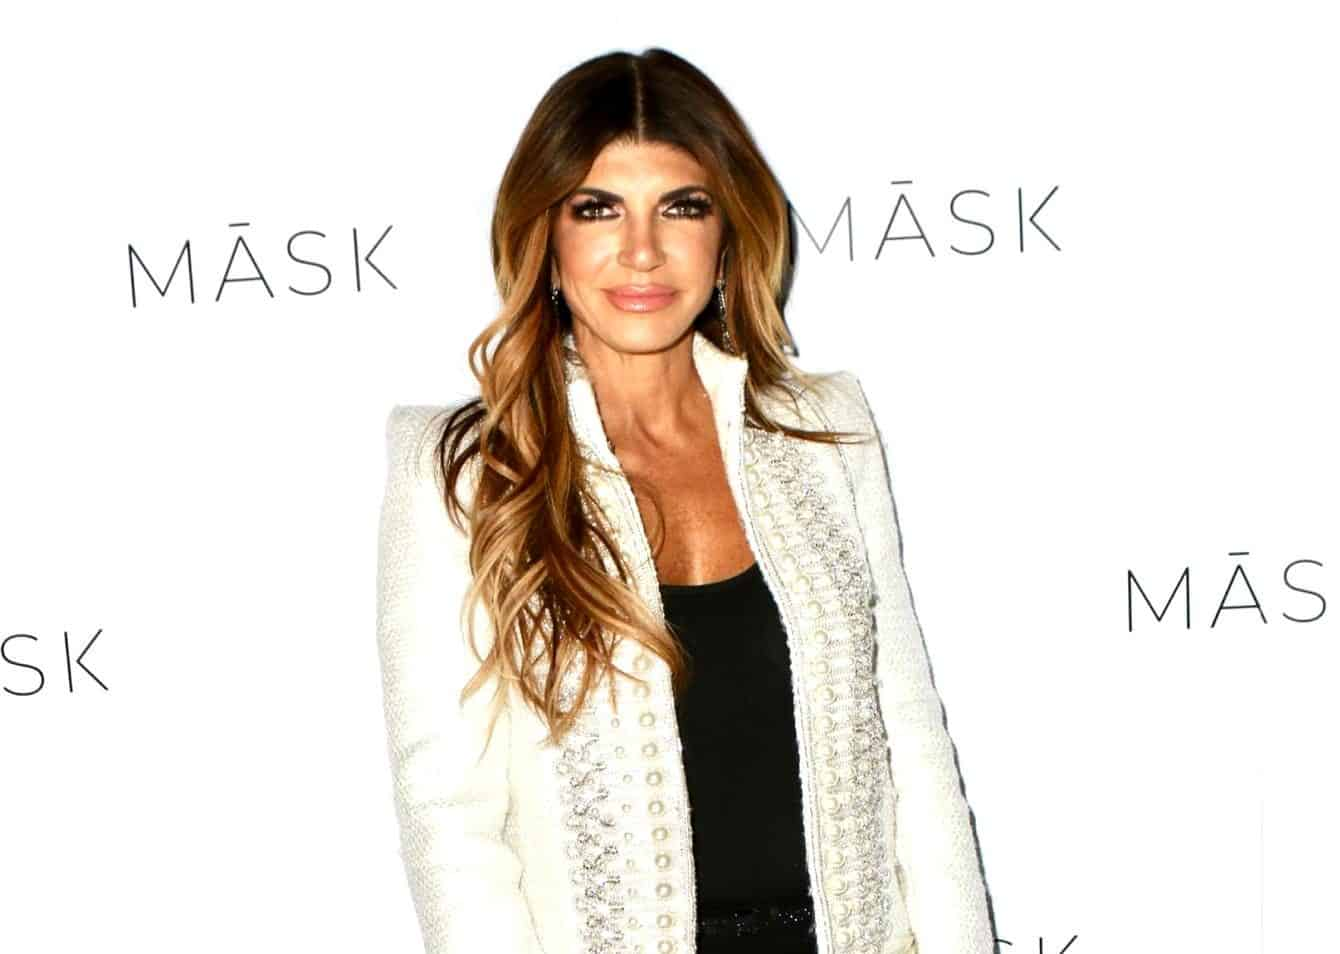 PHOTOS: Teresa Giudice Accused of Wearing Fake Designer Clothing, See RHONJ Star's Sporting Potential Dupes of Balenciaga, Chanel, Fendi, and Louis Vuitton